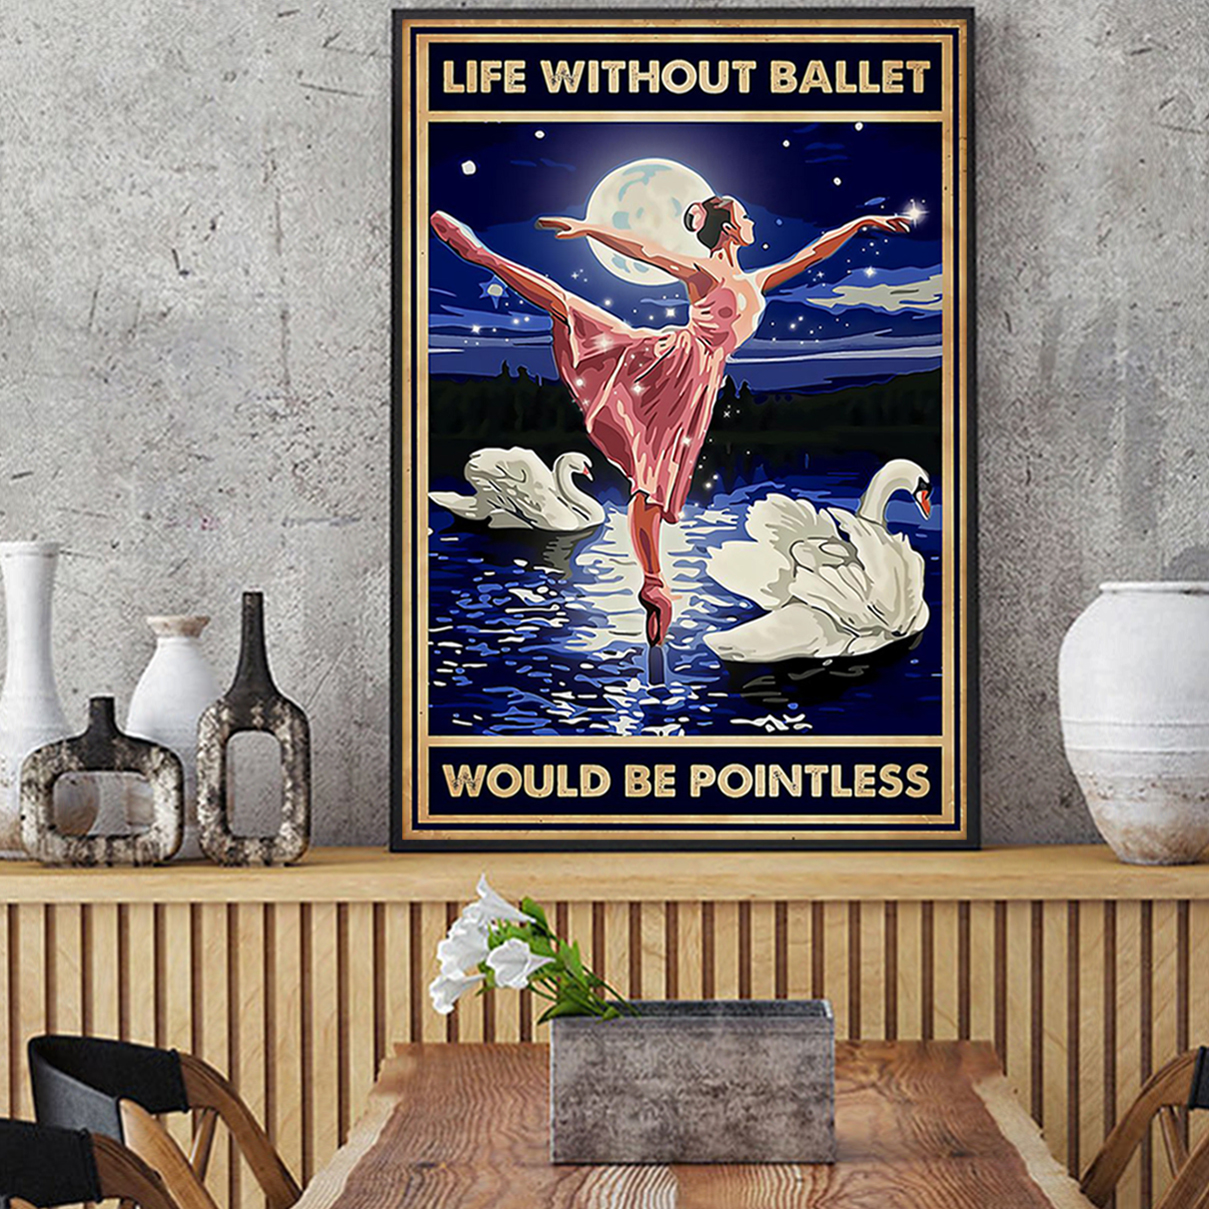 Life without ballet would be pointless poster A1